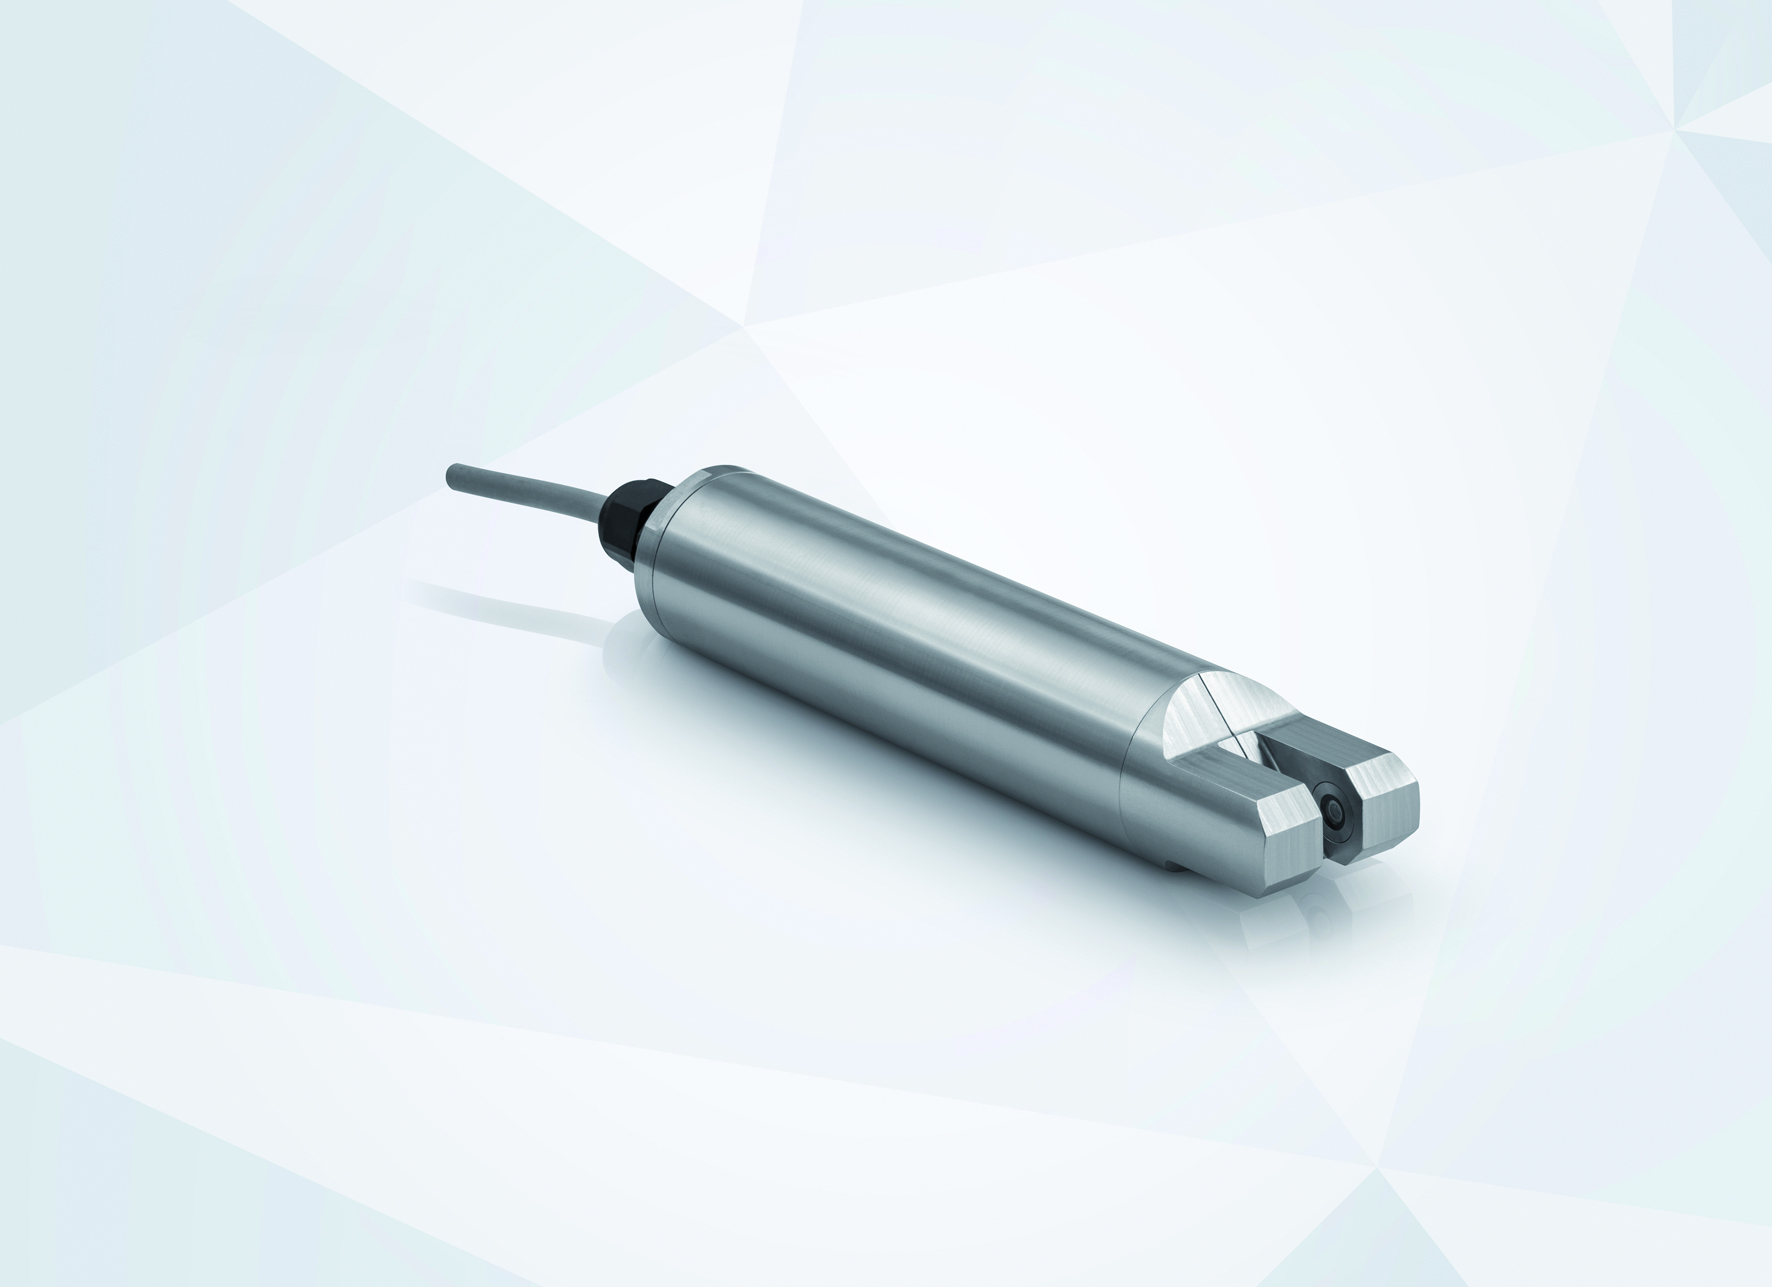 New suspended solids sensor Optisens TSS 2000 for process and quality control in industrial and municipal wastewater applications. Picture: Krohne Messtechnik